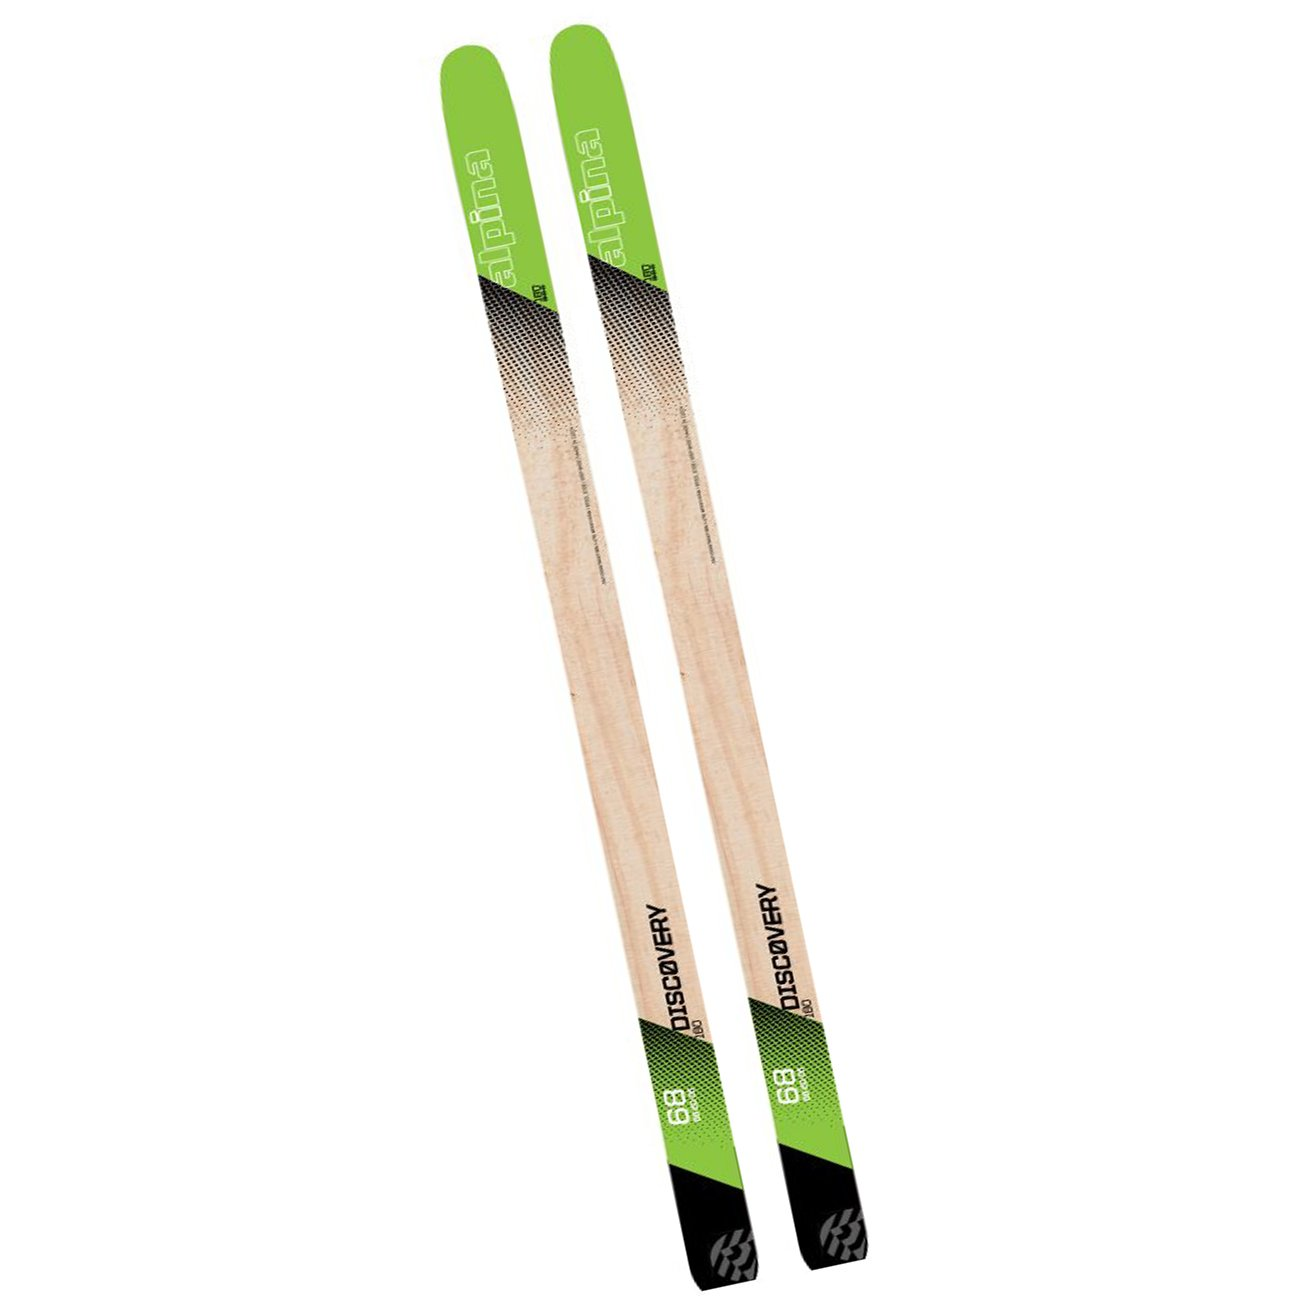 Alpina Discovery 68 Nordic Skis